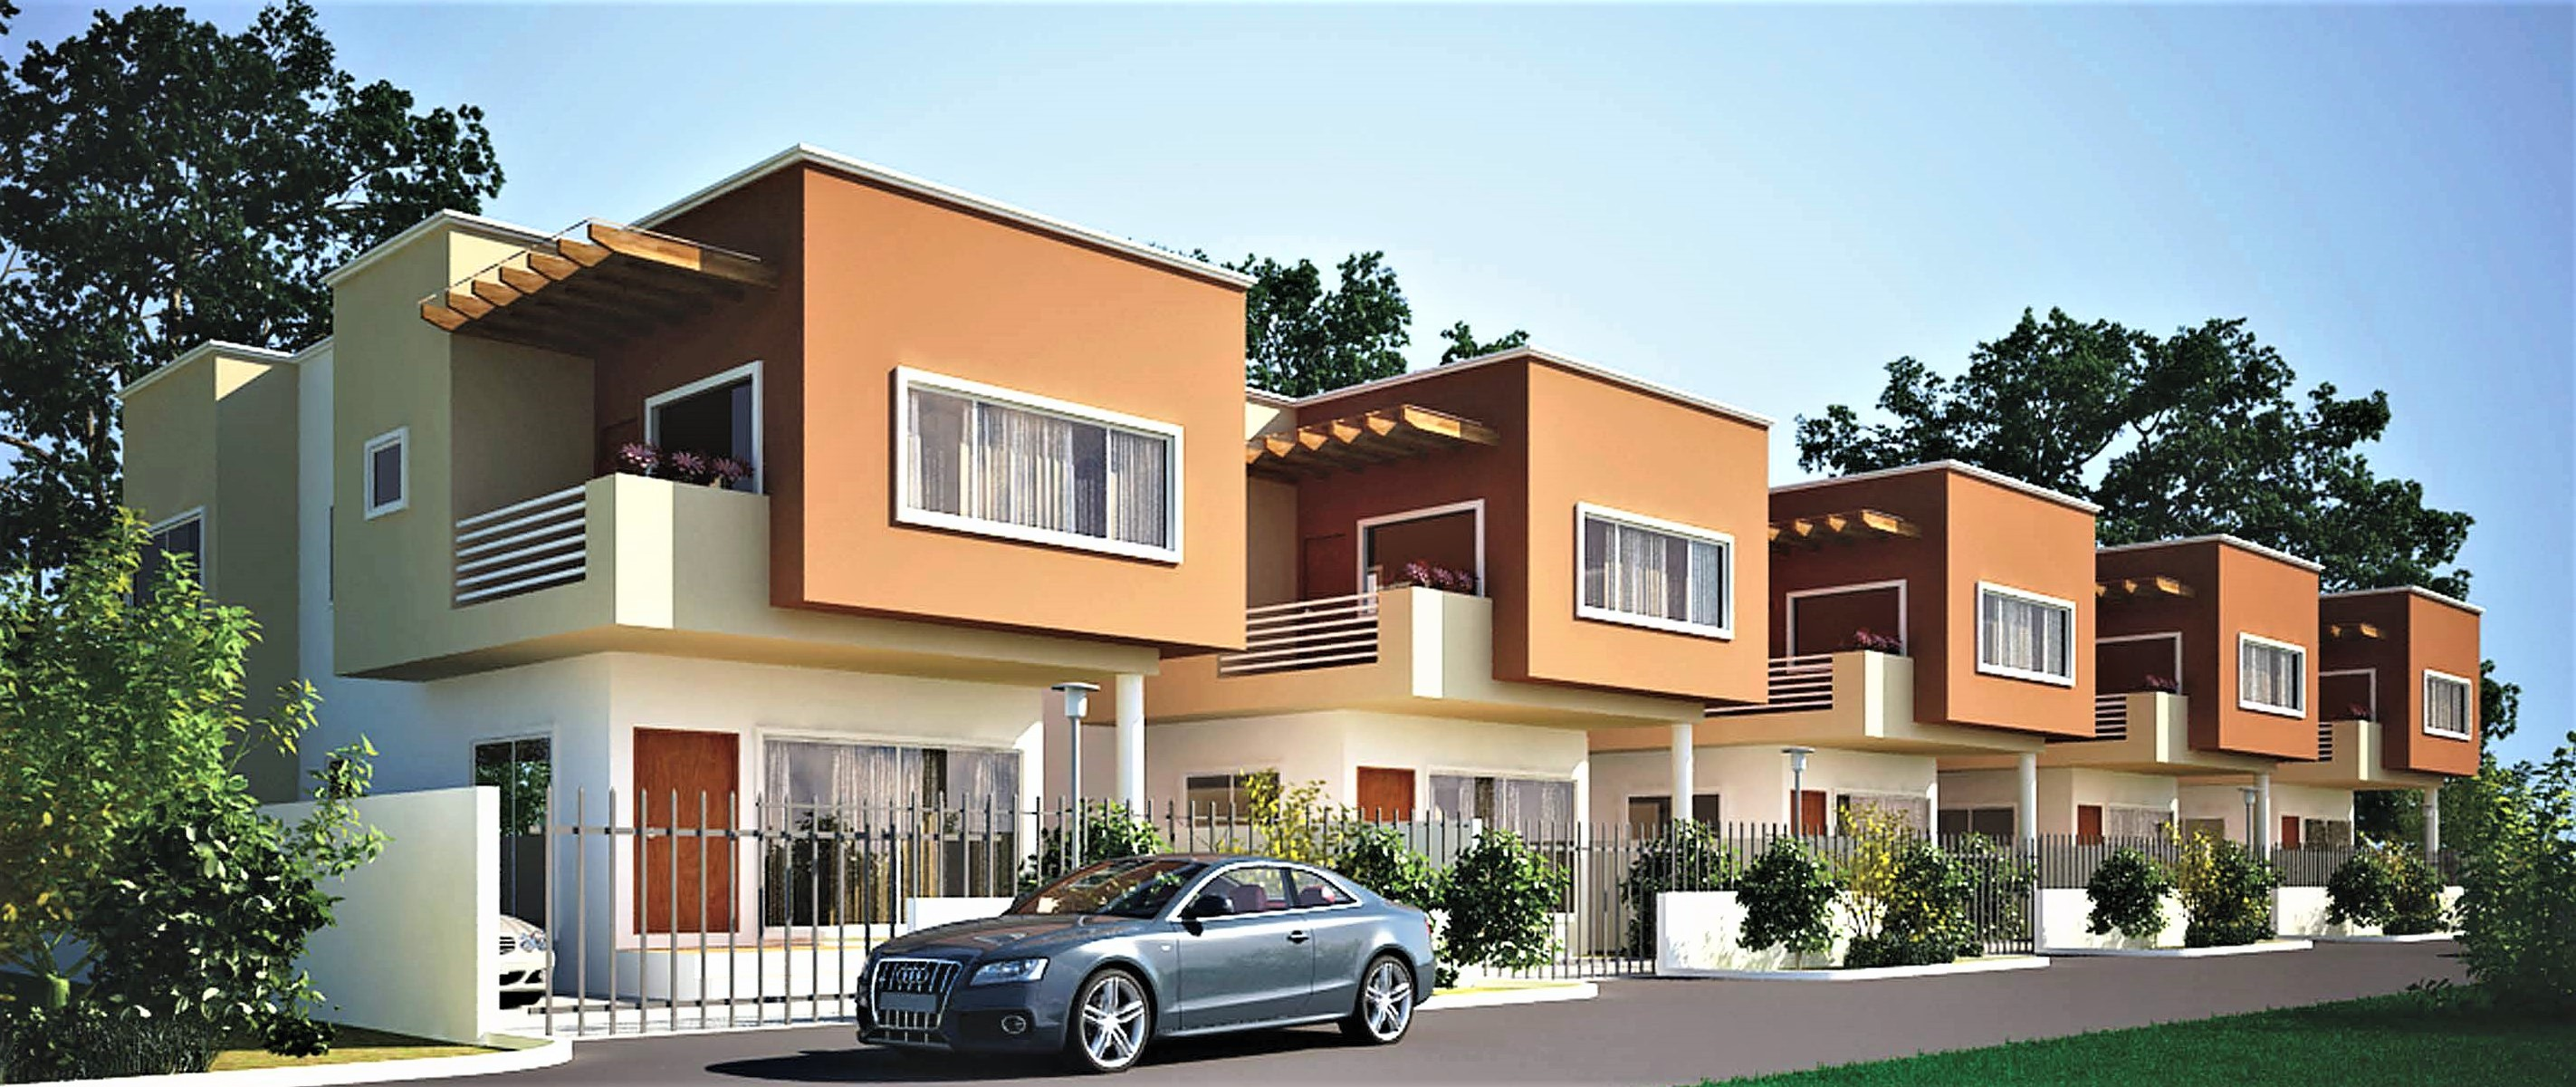 premier homes 3 bedrooms townhouse abelemkpe On 3 bedroom townhouse